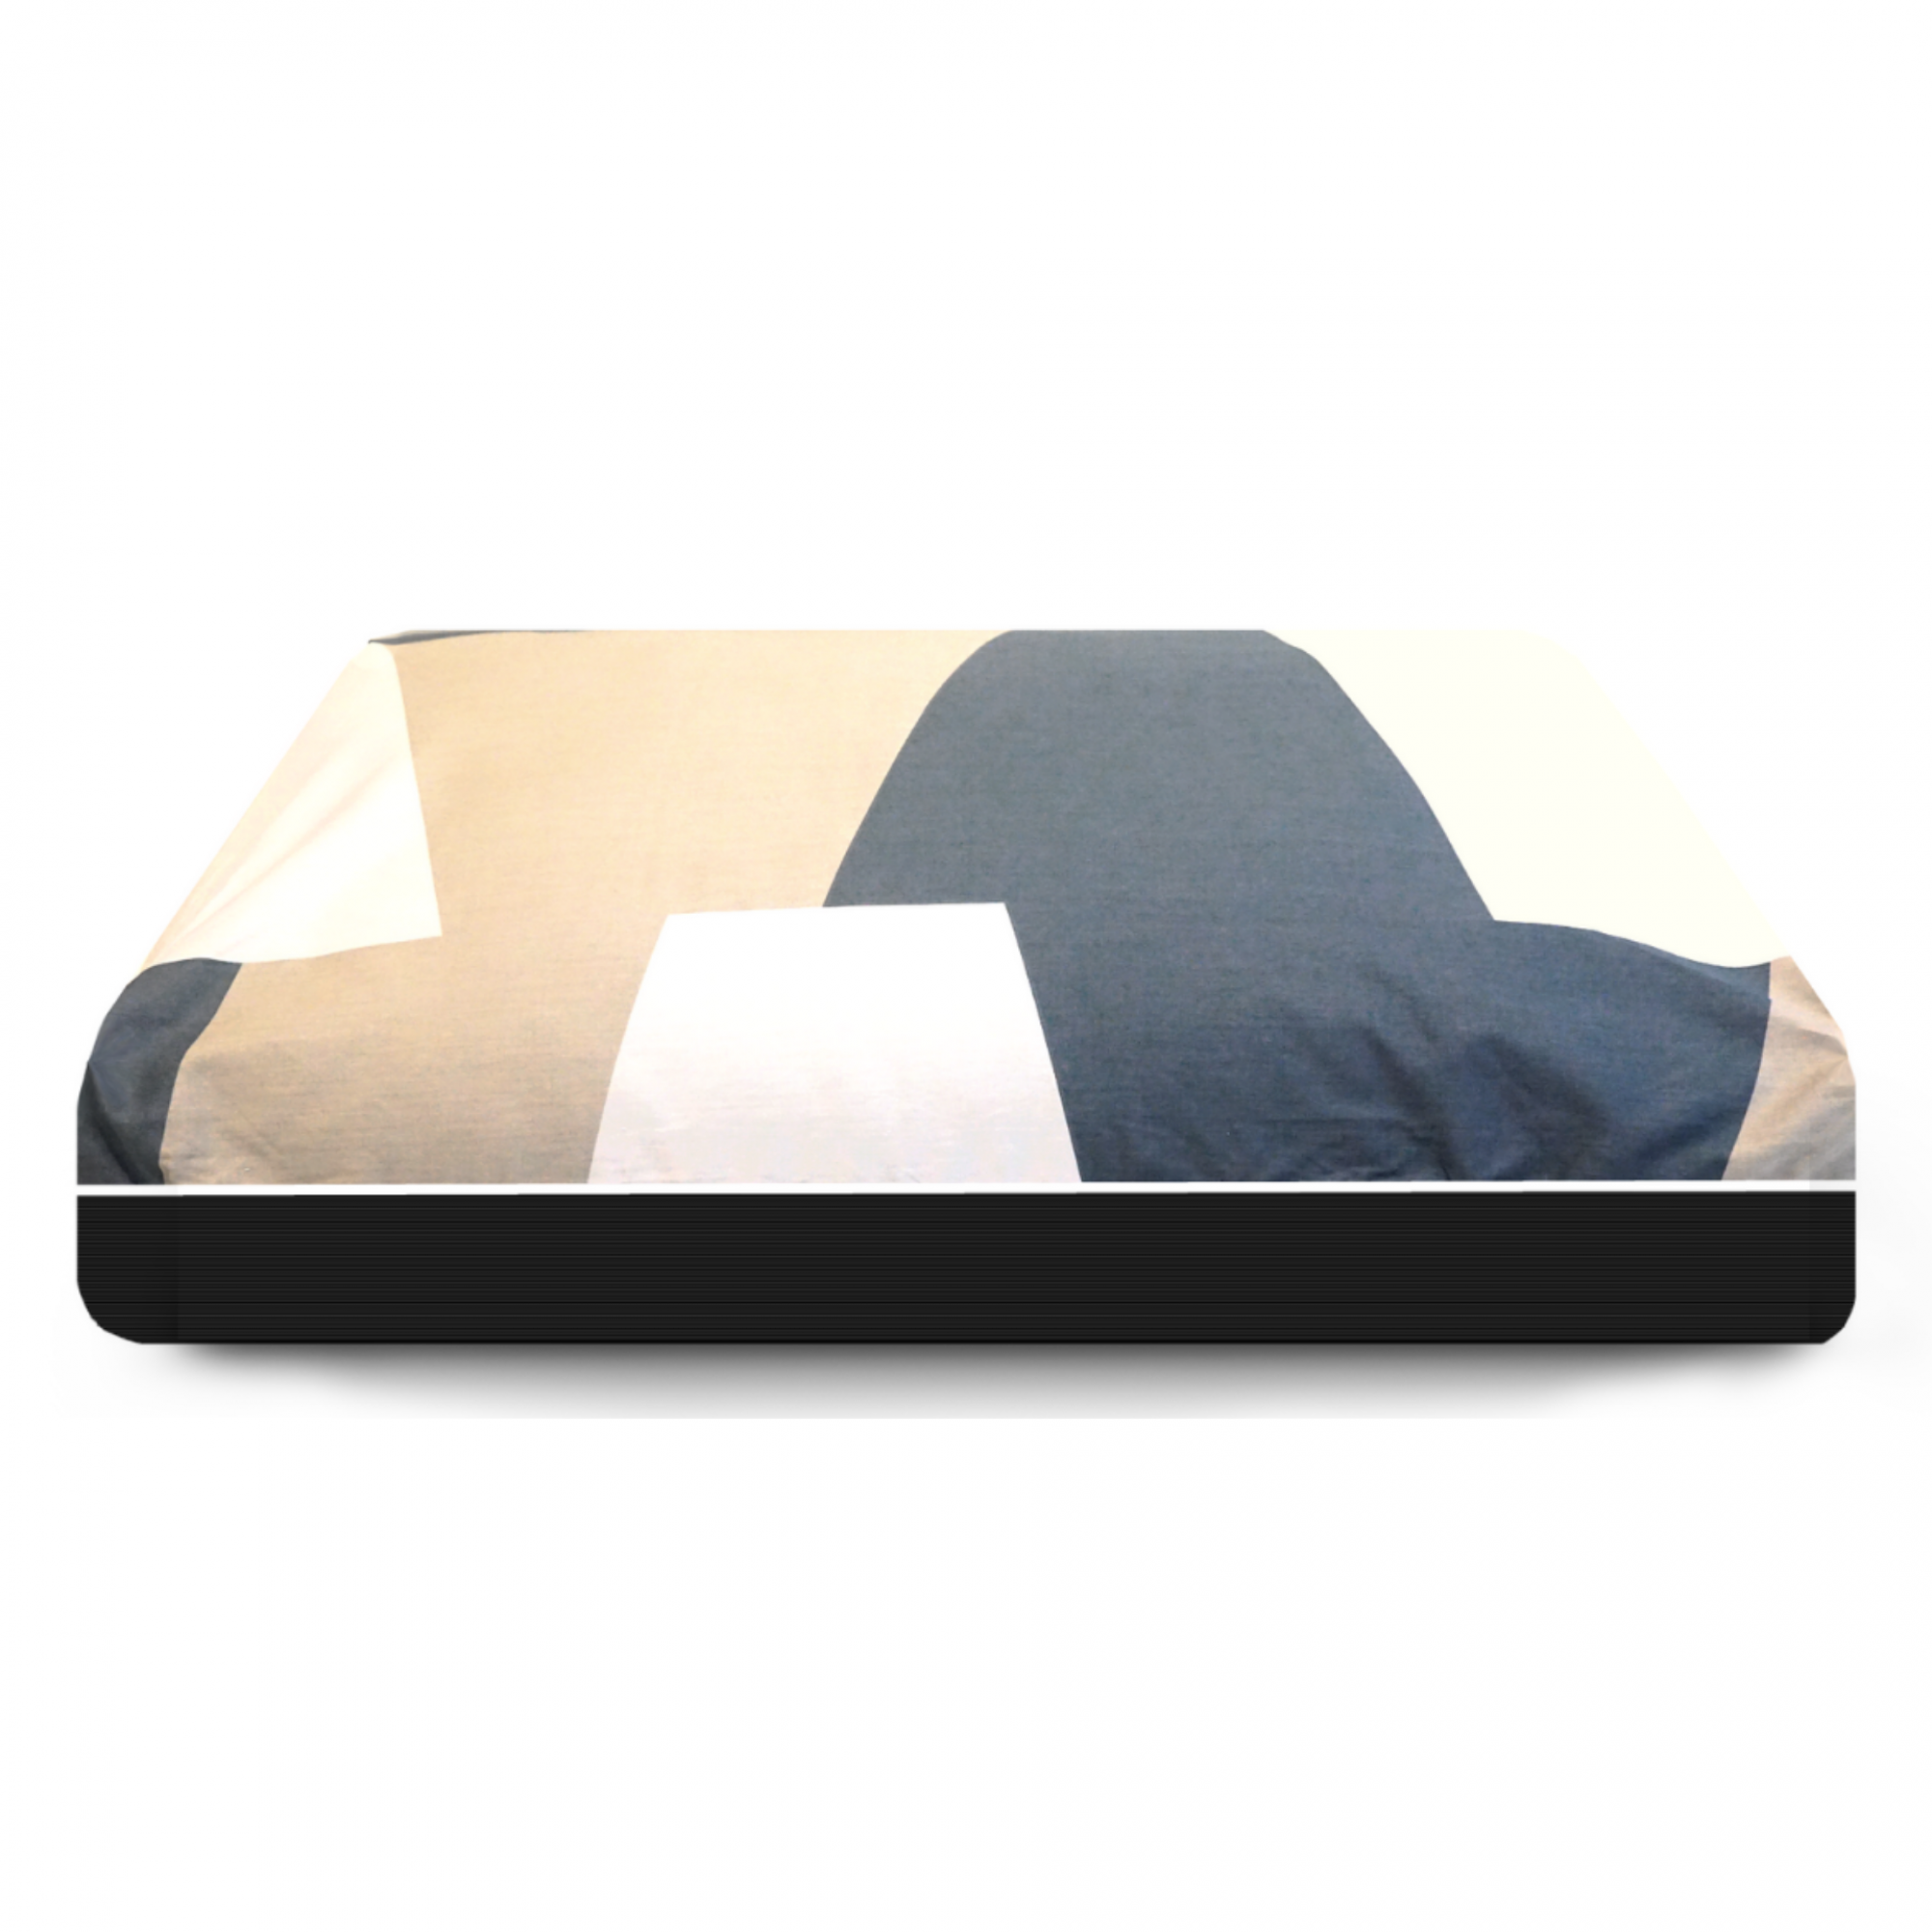 Dreamcastle Dog Bed - Classic Abstract